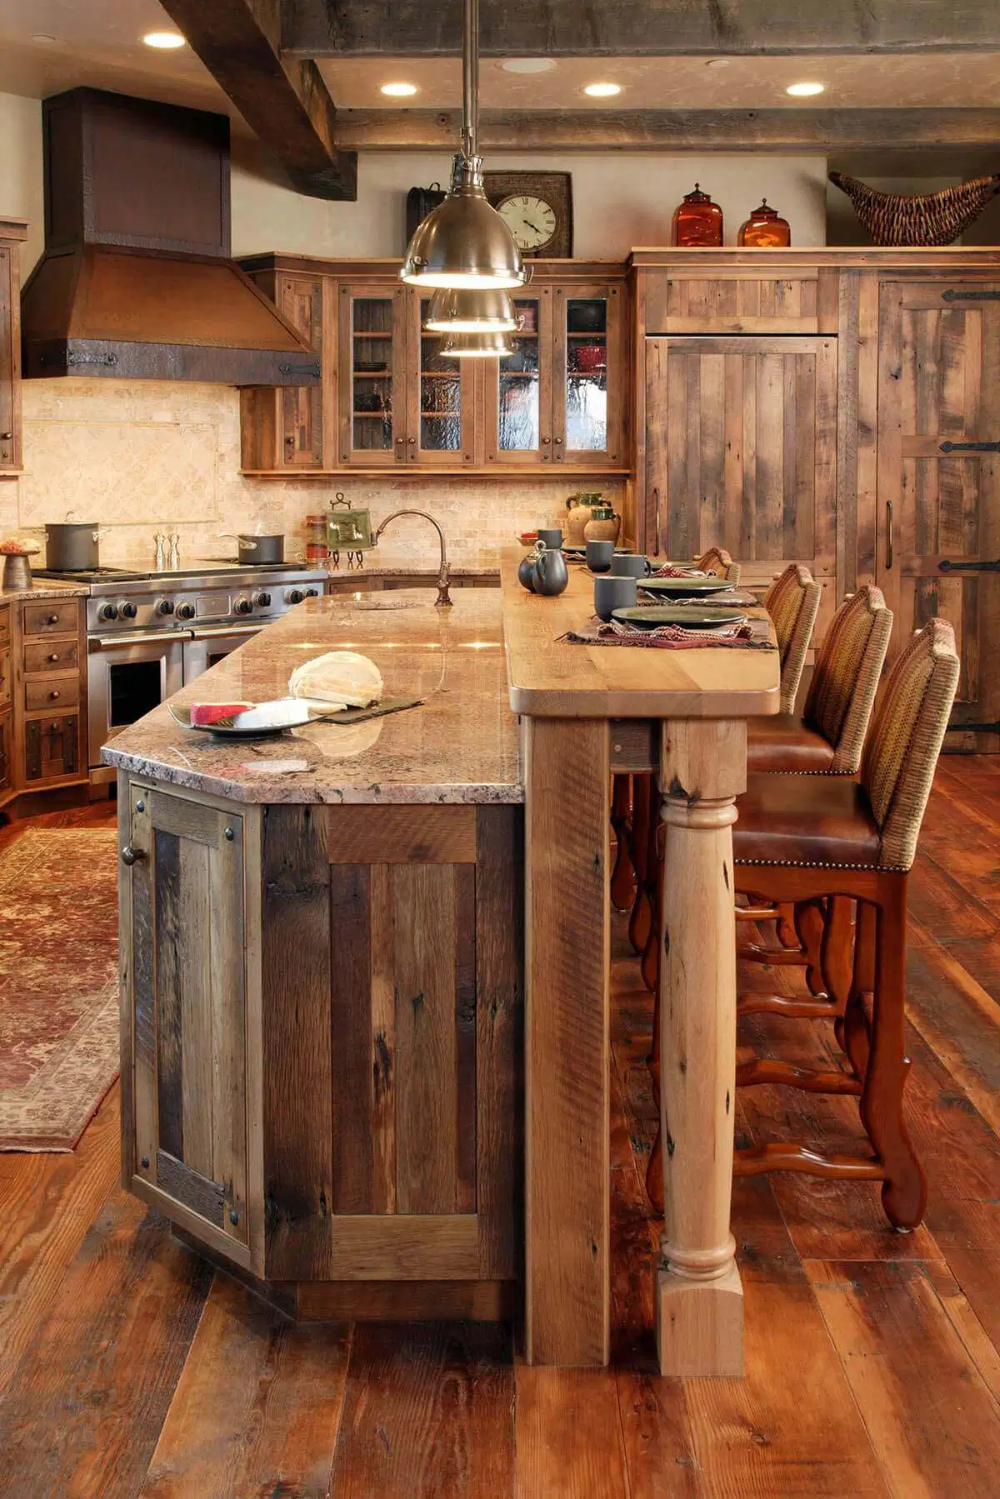 15 Best Rustic Kitchen Cabinet Ideas And Design Gallery 2019 In